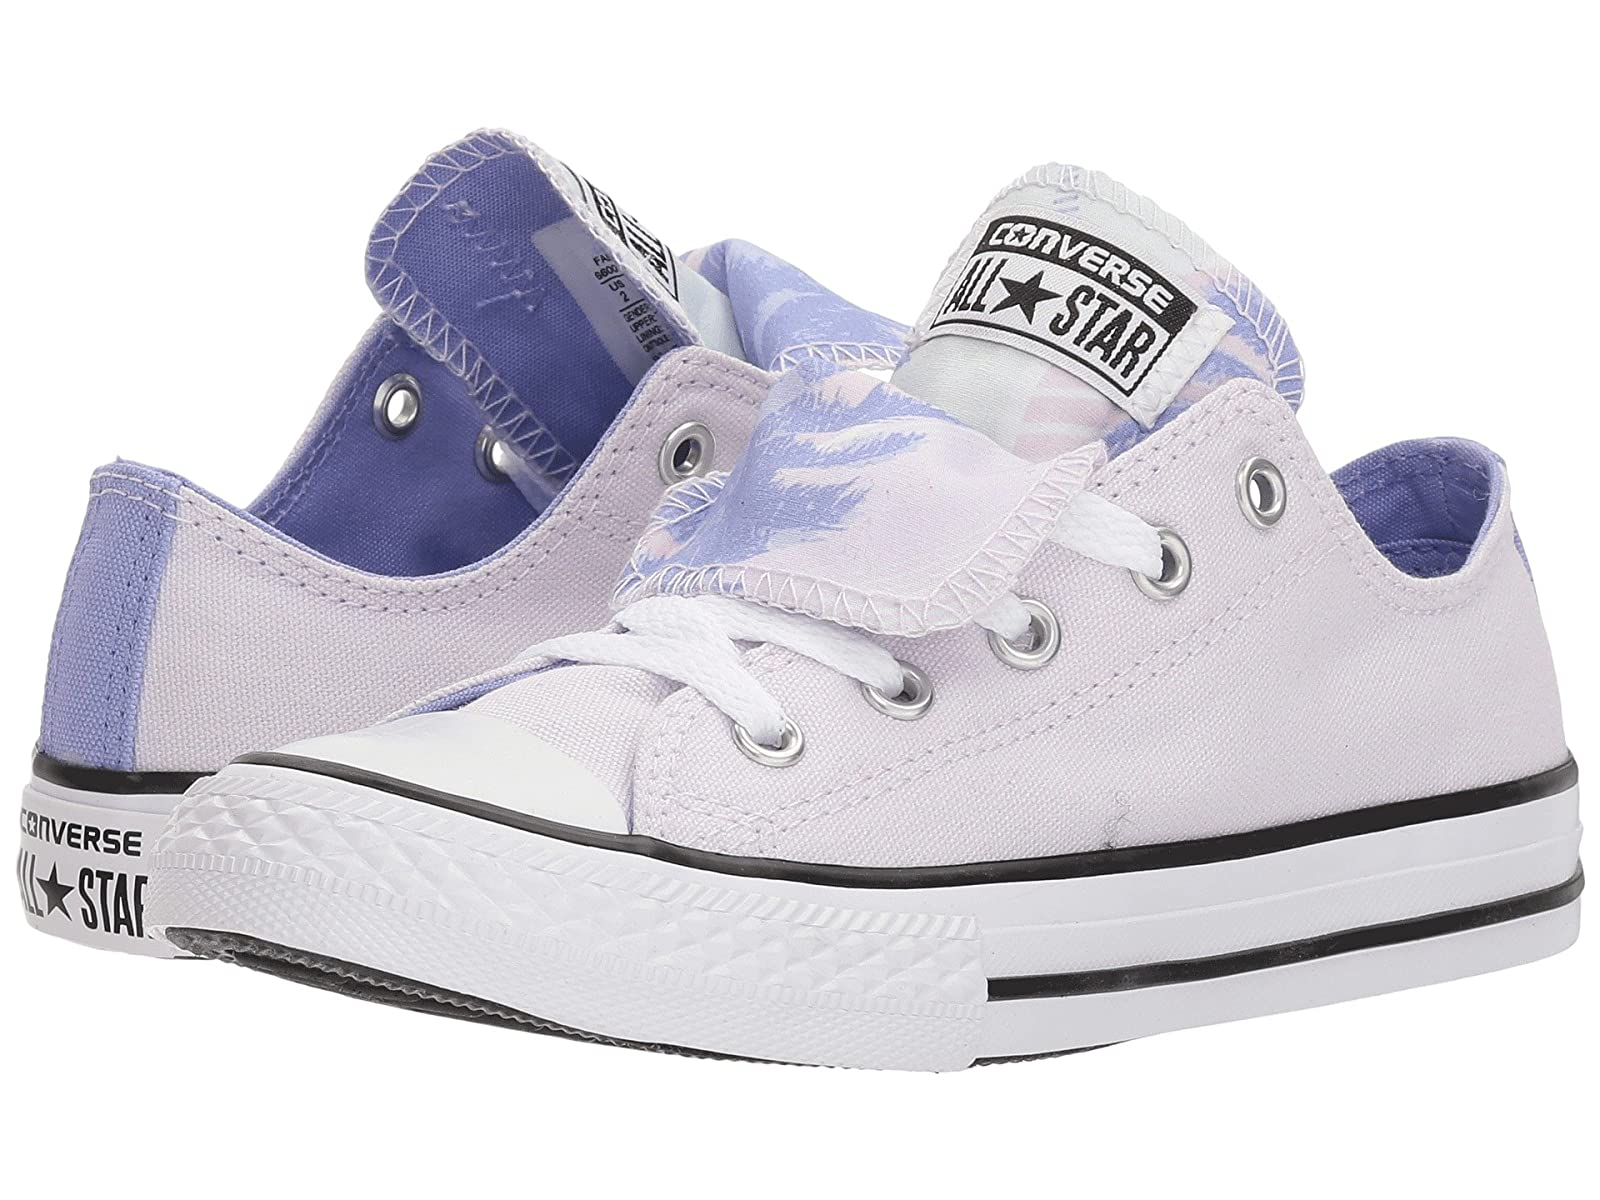 Converse Kids Chuck Taylor All Star Double Tongue Palm Trees Ox (Little Kid/Big Kid)Atmospheric grades have affordable shoes